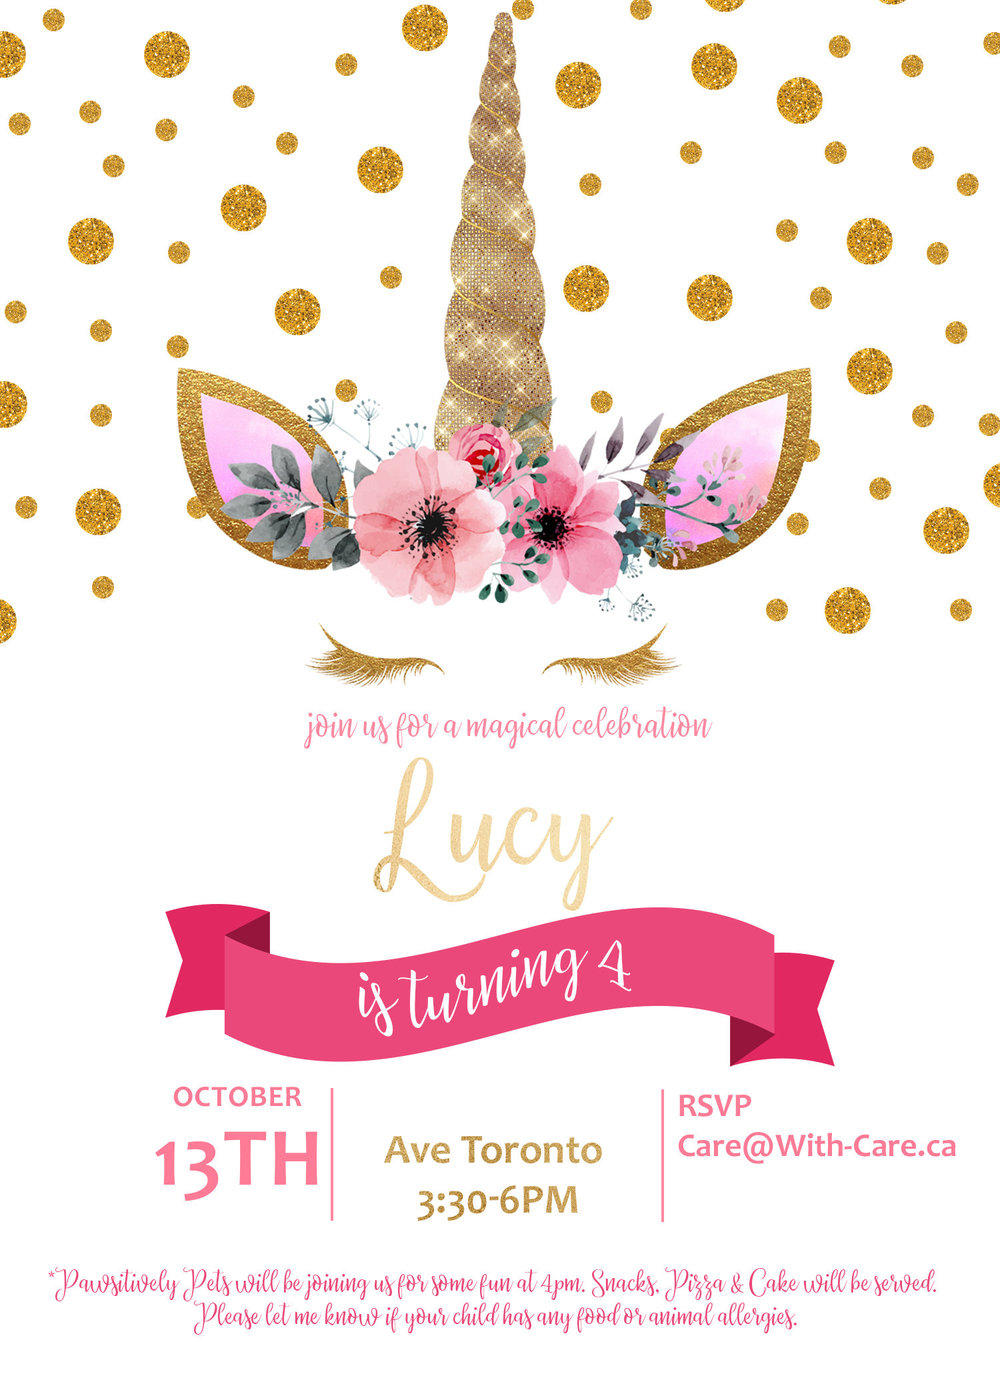 Lucys 4th Unicorn Birthday Party With Care I Education And